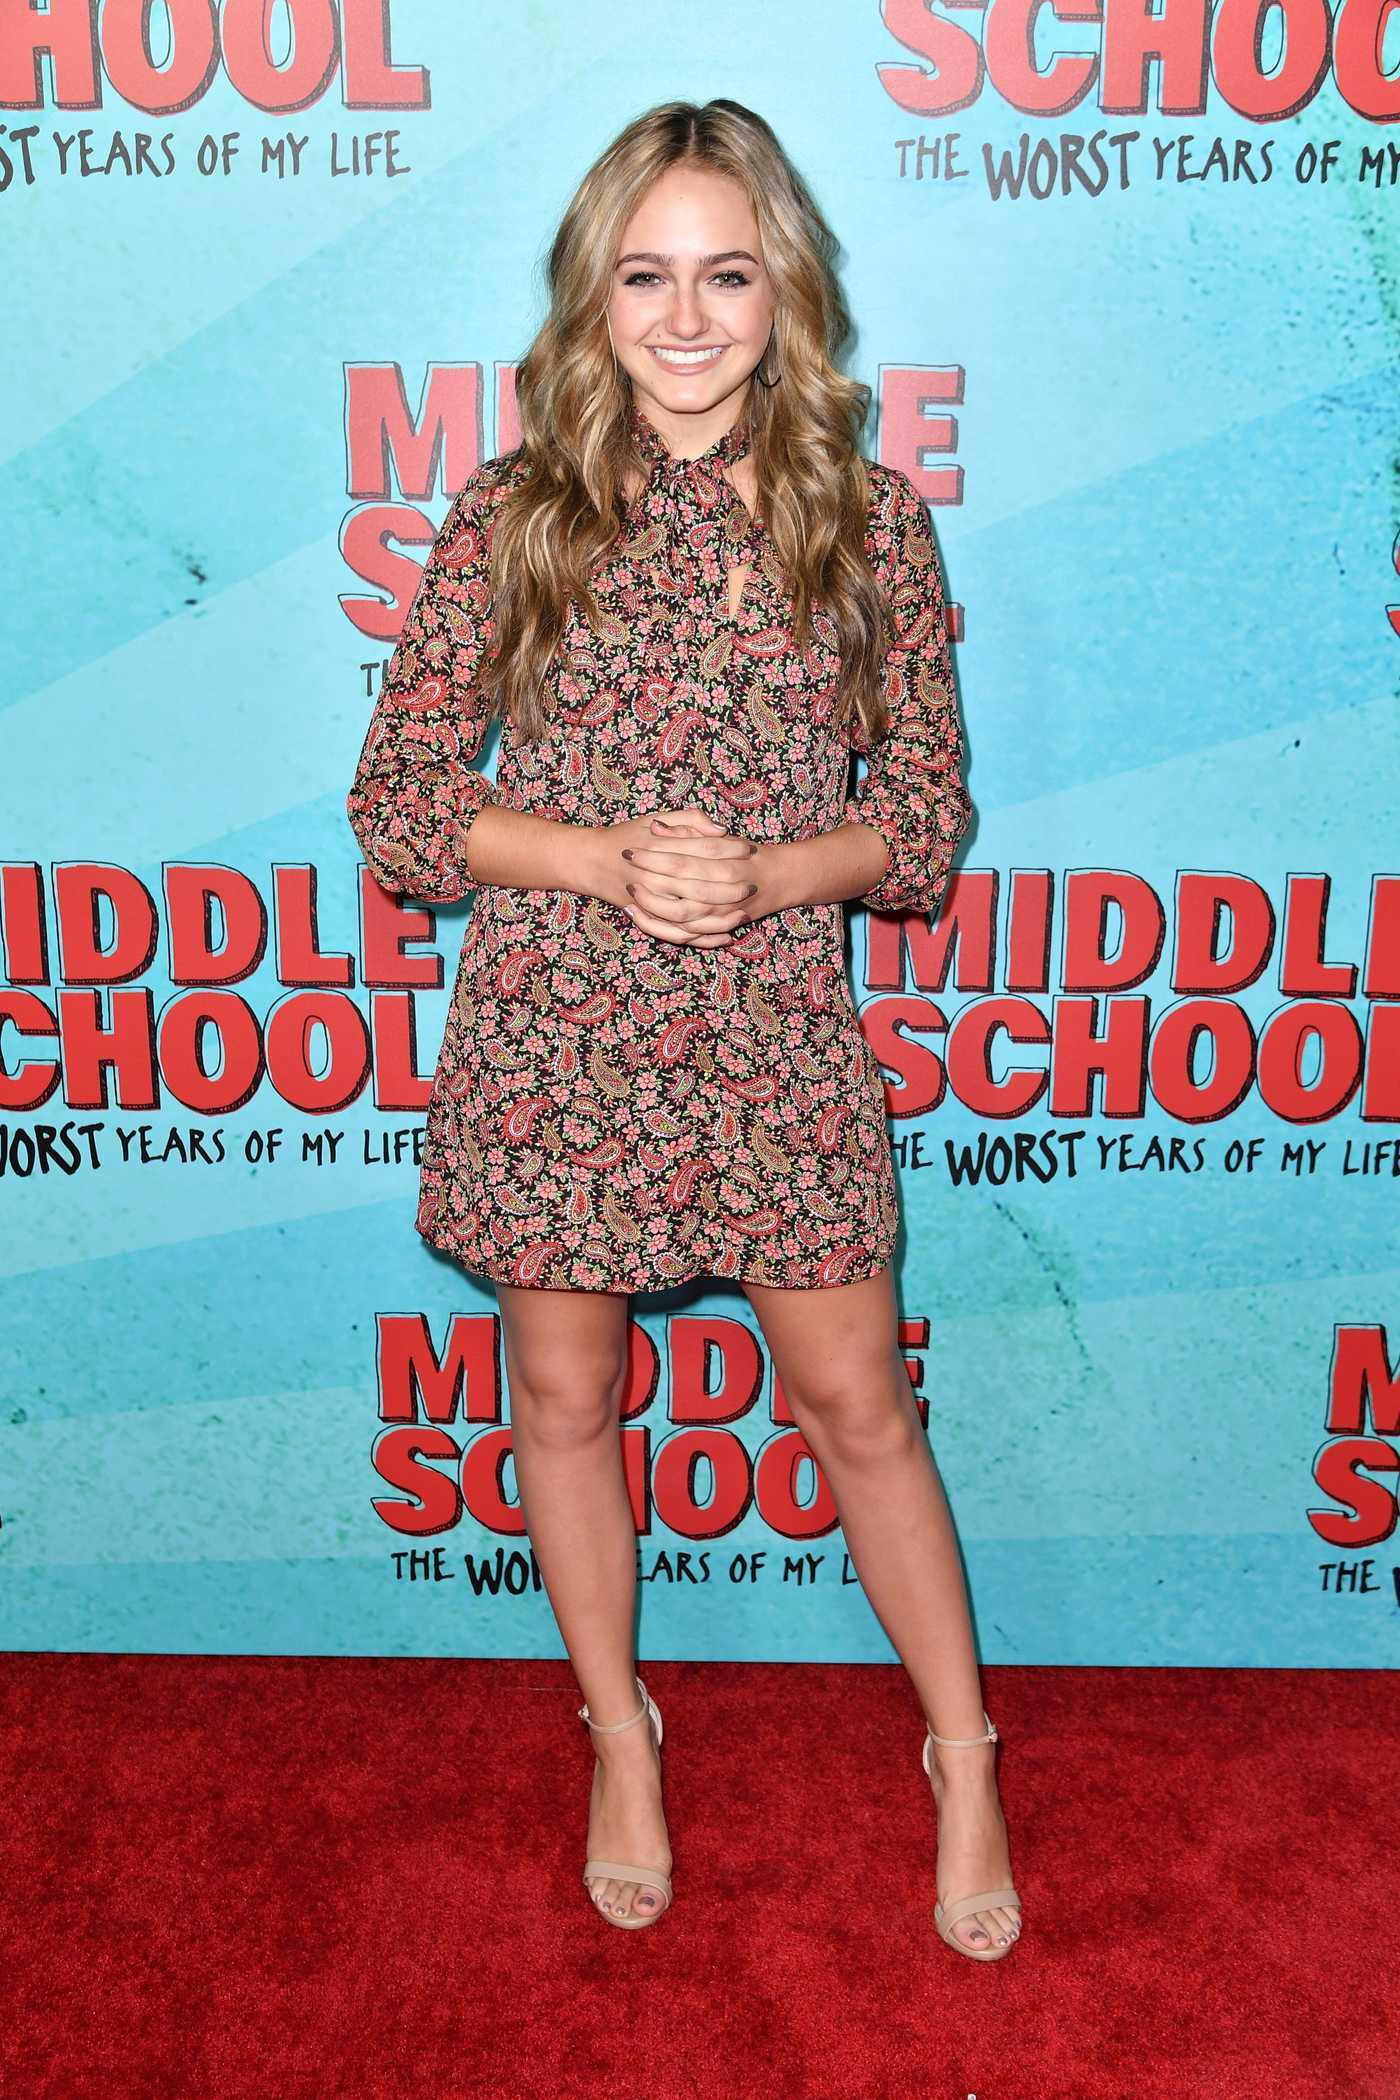 Sophie Reynolds at the Middle School: The Worst Years of My Life Premiere in Los Angeles 10/05/2016